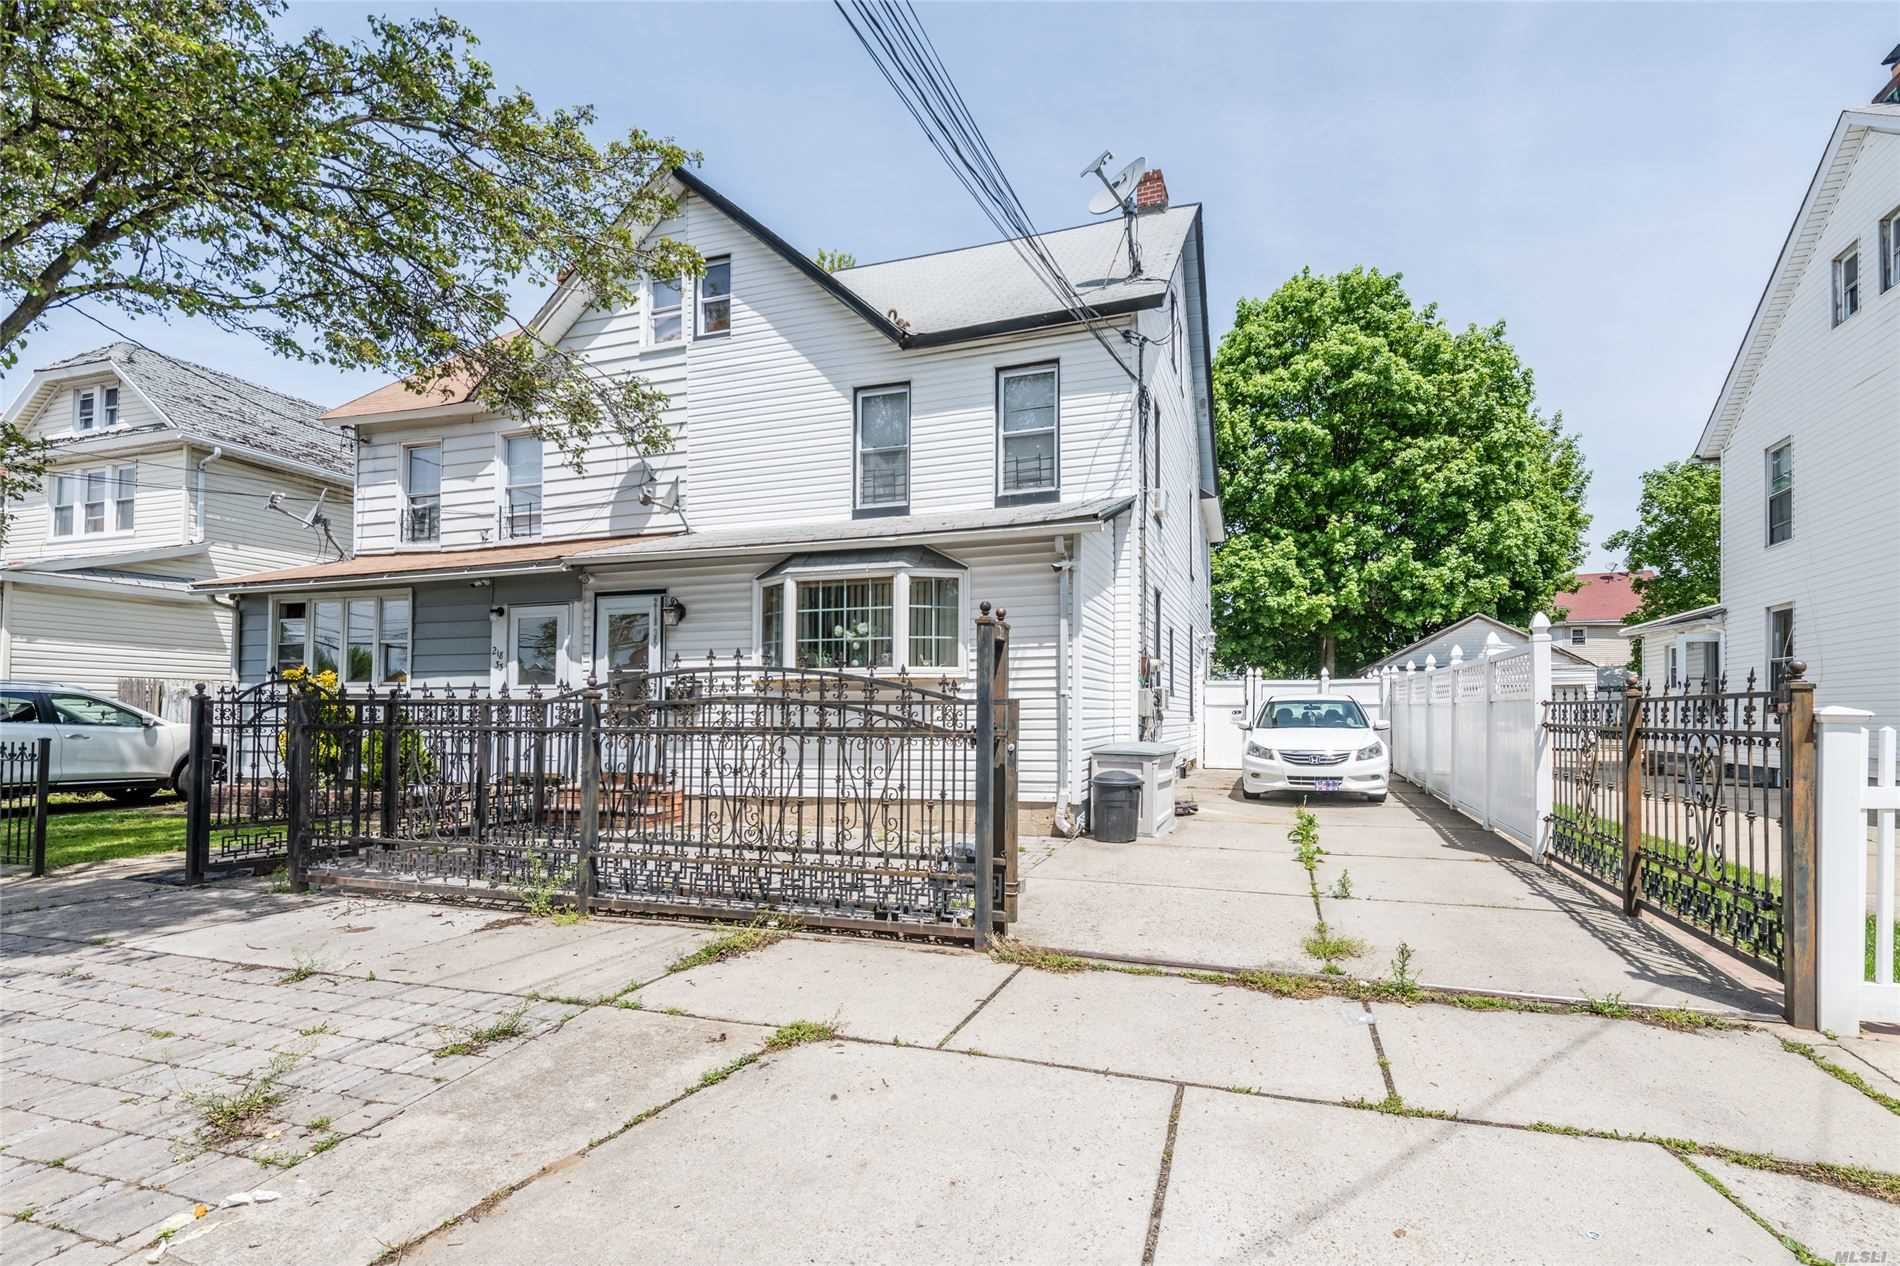 218-35 101st Ave, Queens Village, NY 11429 - MLS#: 3215021